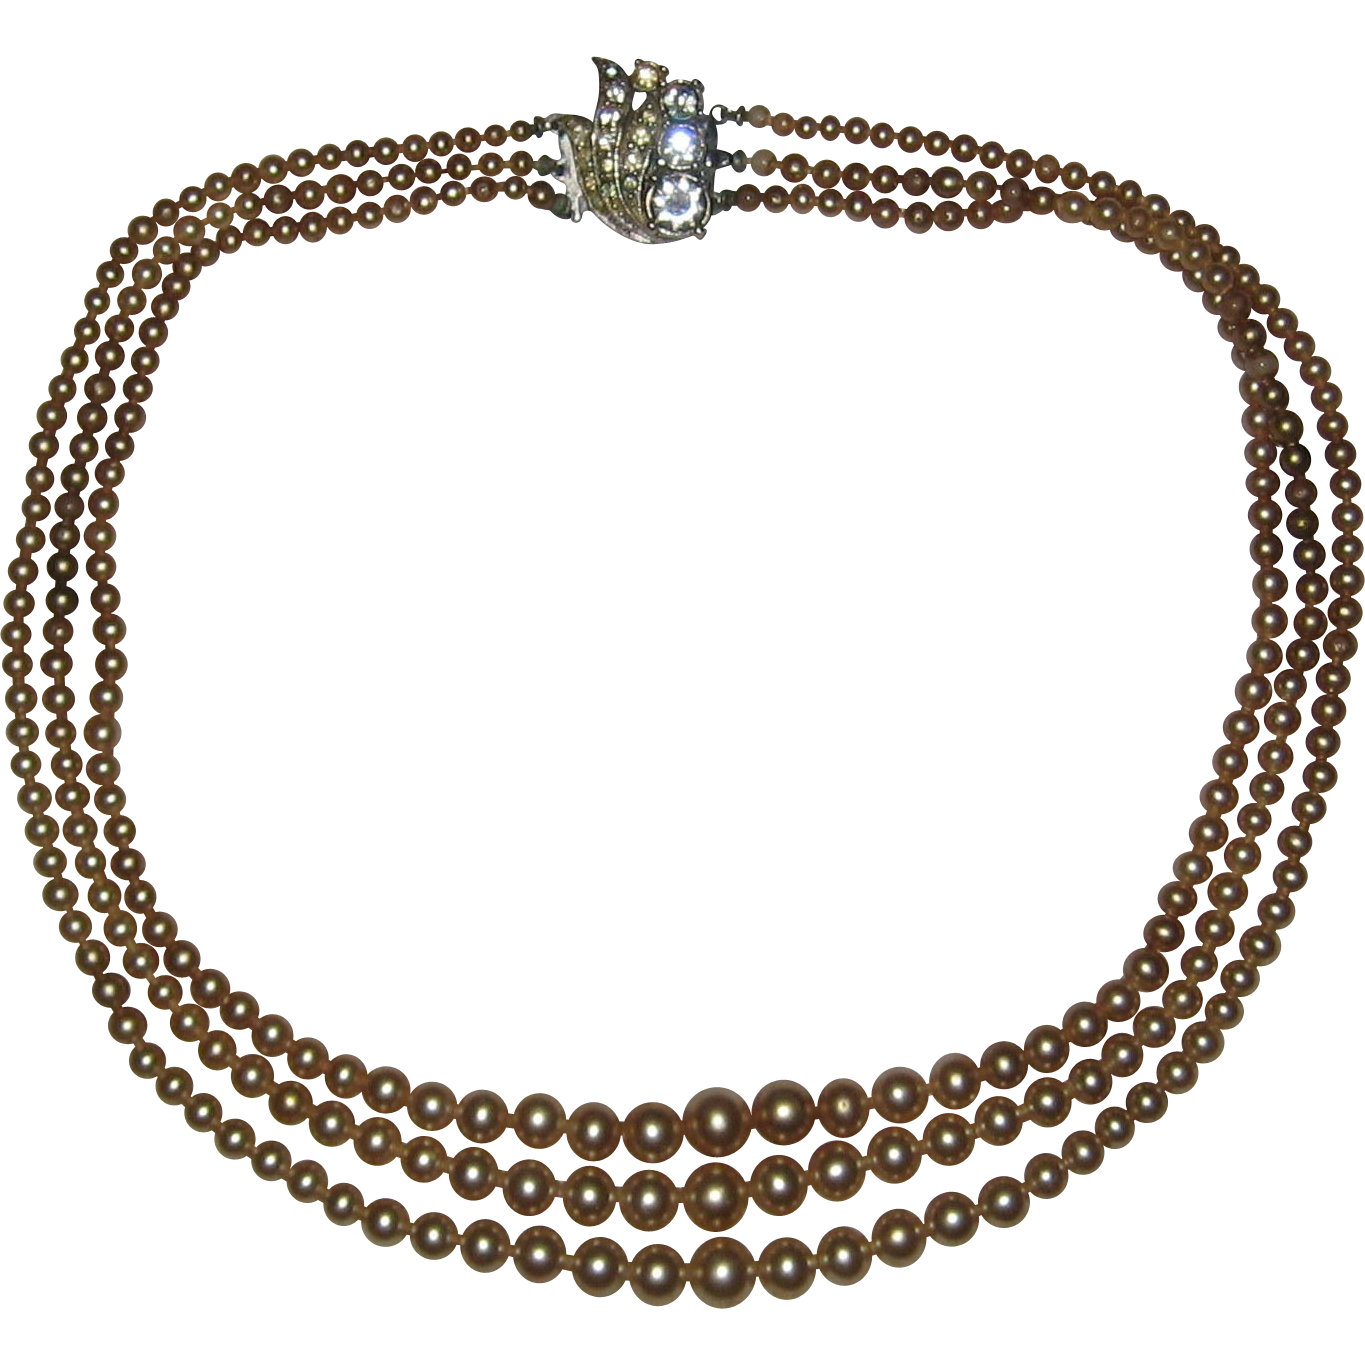 Tan or Golden Colored Three Strand Costume Pearl Necklace with Diamante Clasp - Circa 1940